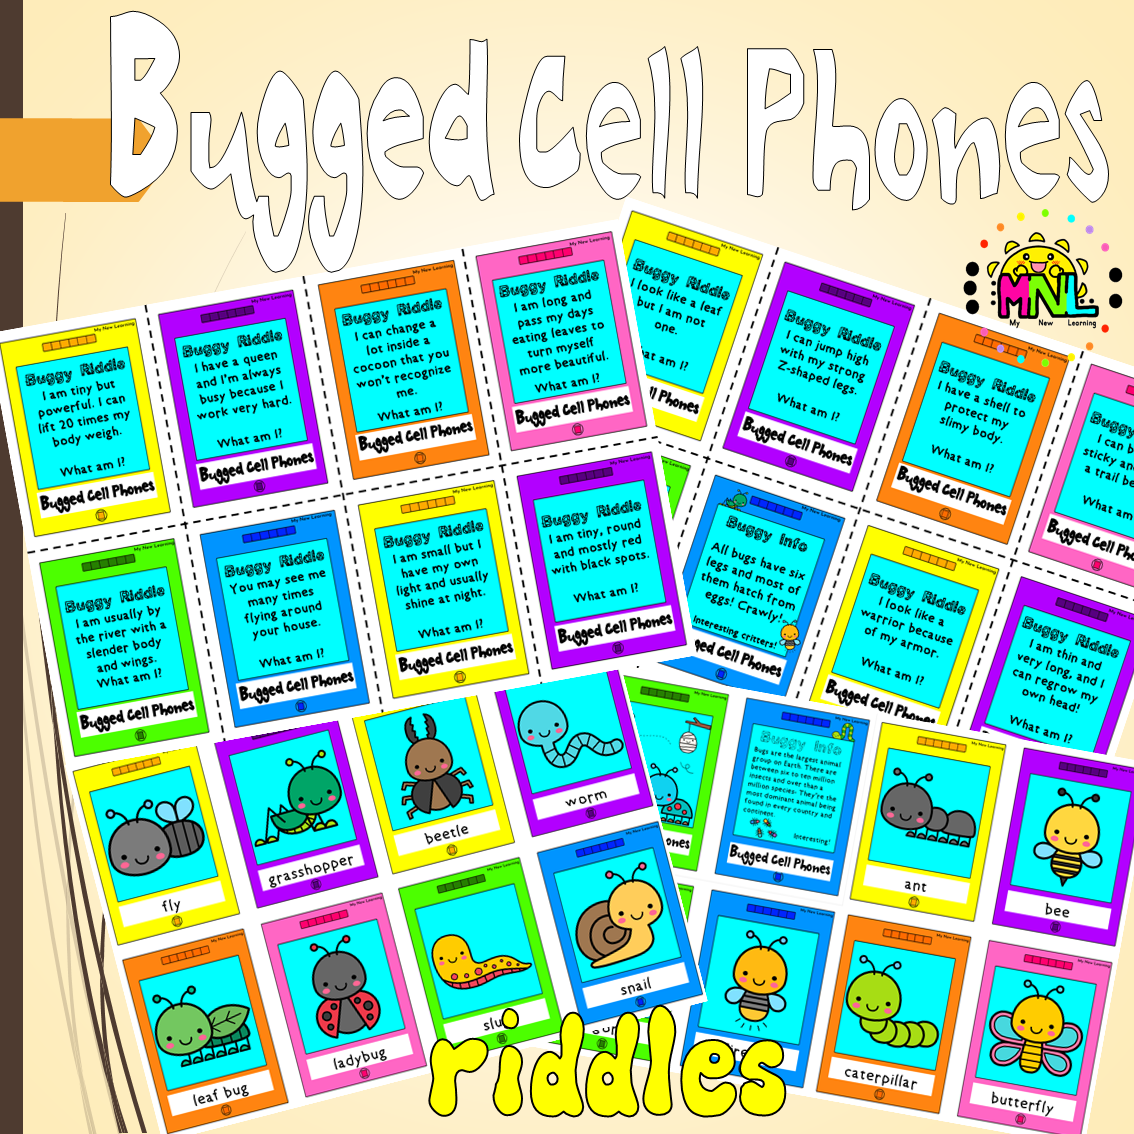 Bugged Cellphones Activity And Riddles Pack In